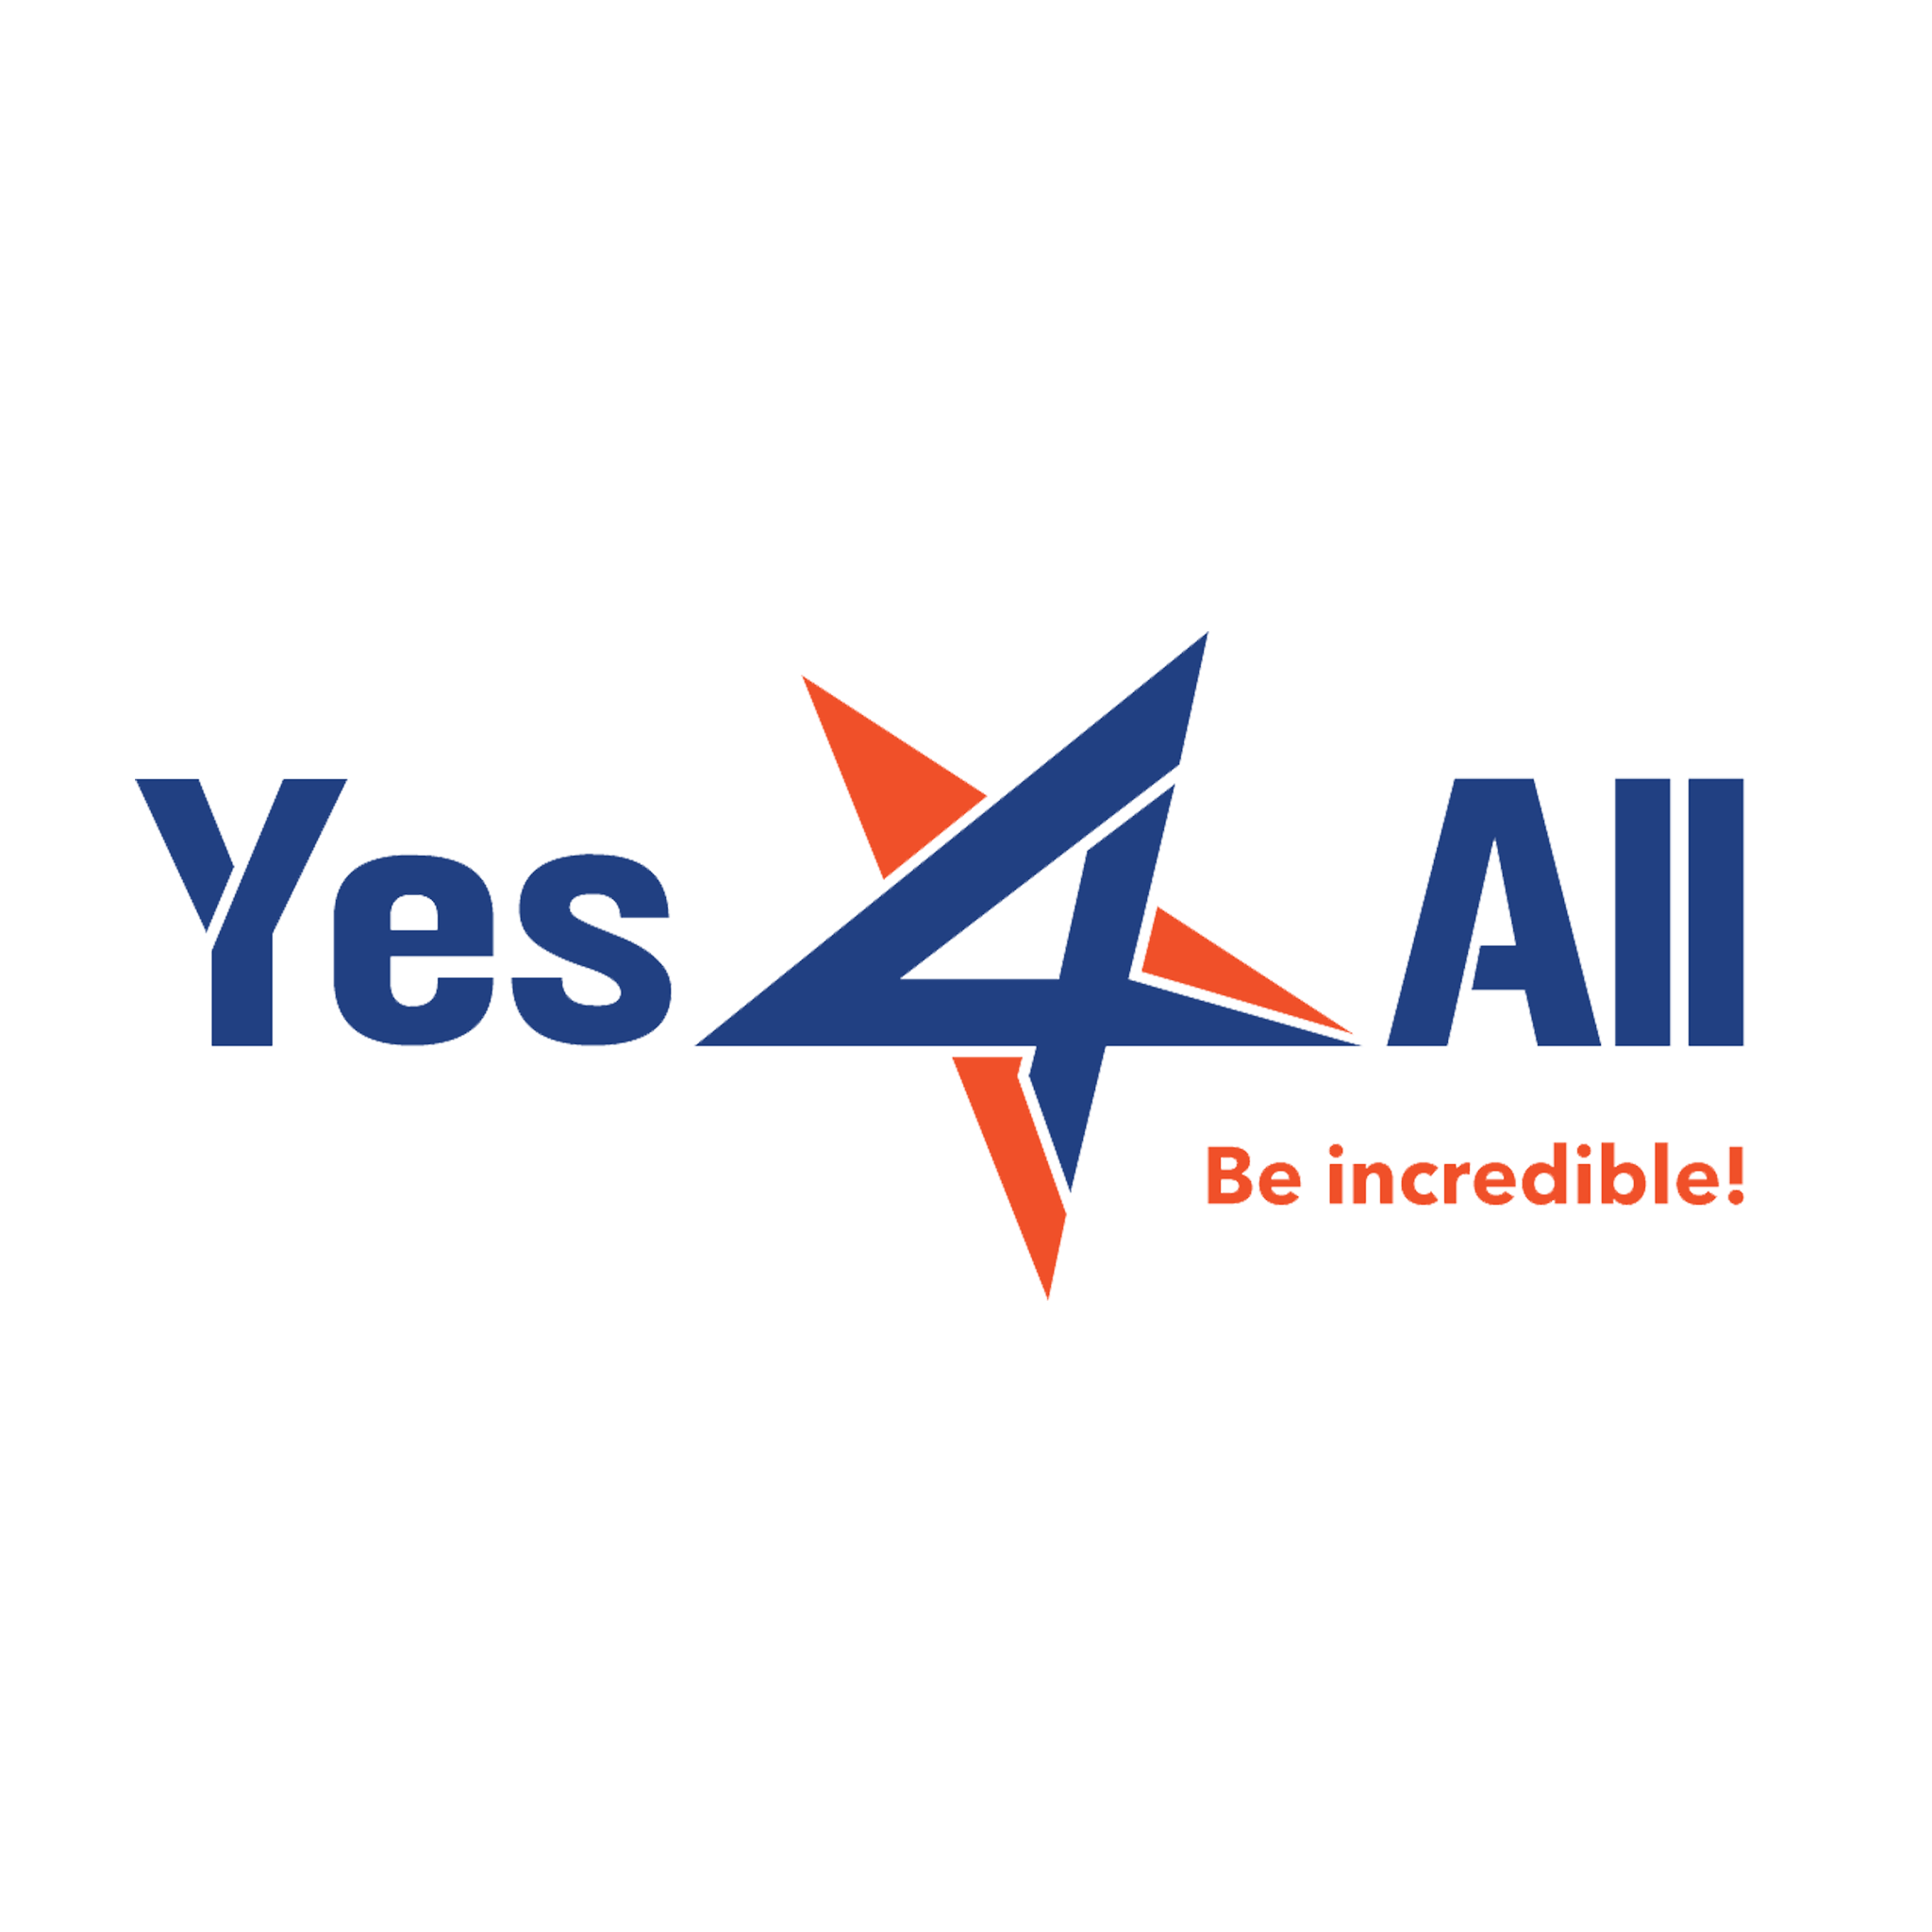 Yes4All Trading Services Company Limited